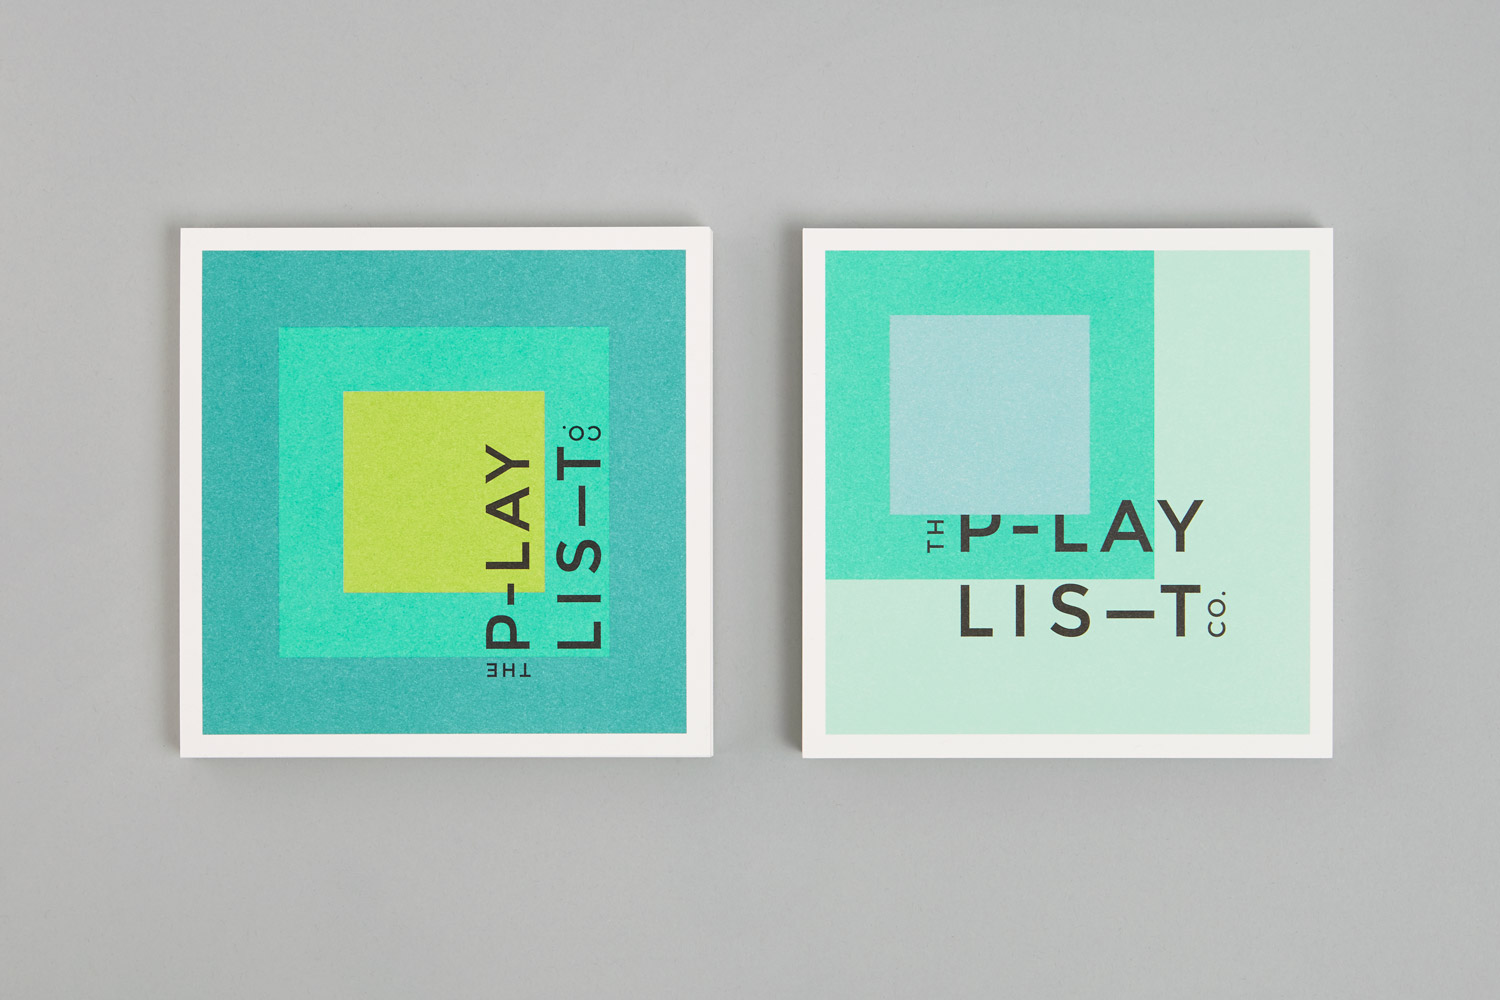 Brand identity and cards for Toronto based custom event soundtrack business The Playlist Co. by graphic design studio Blok